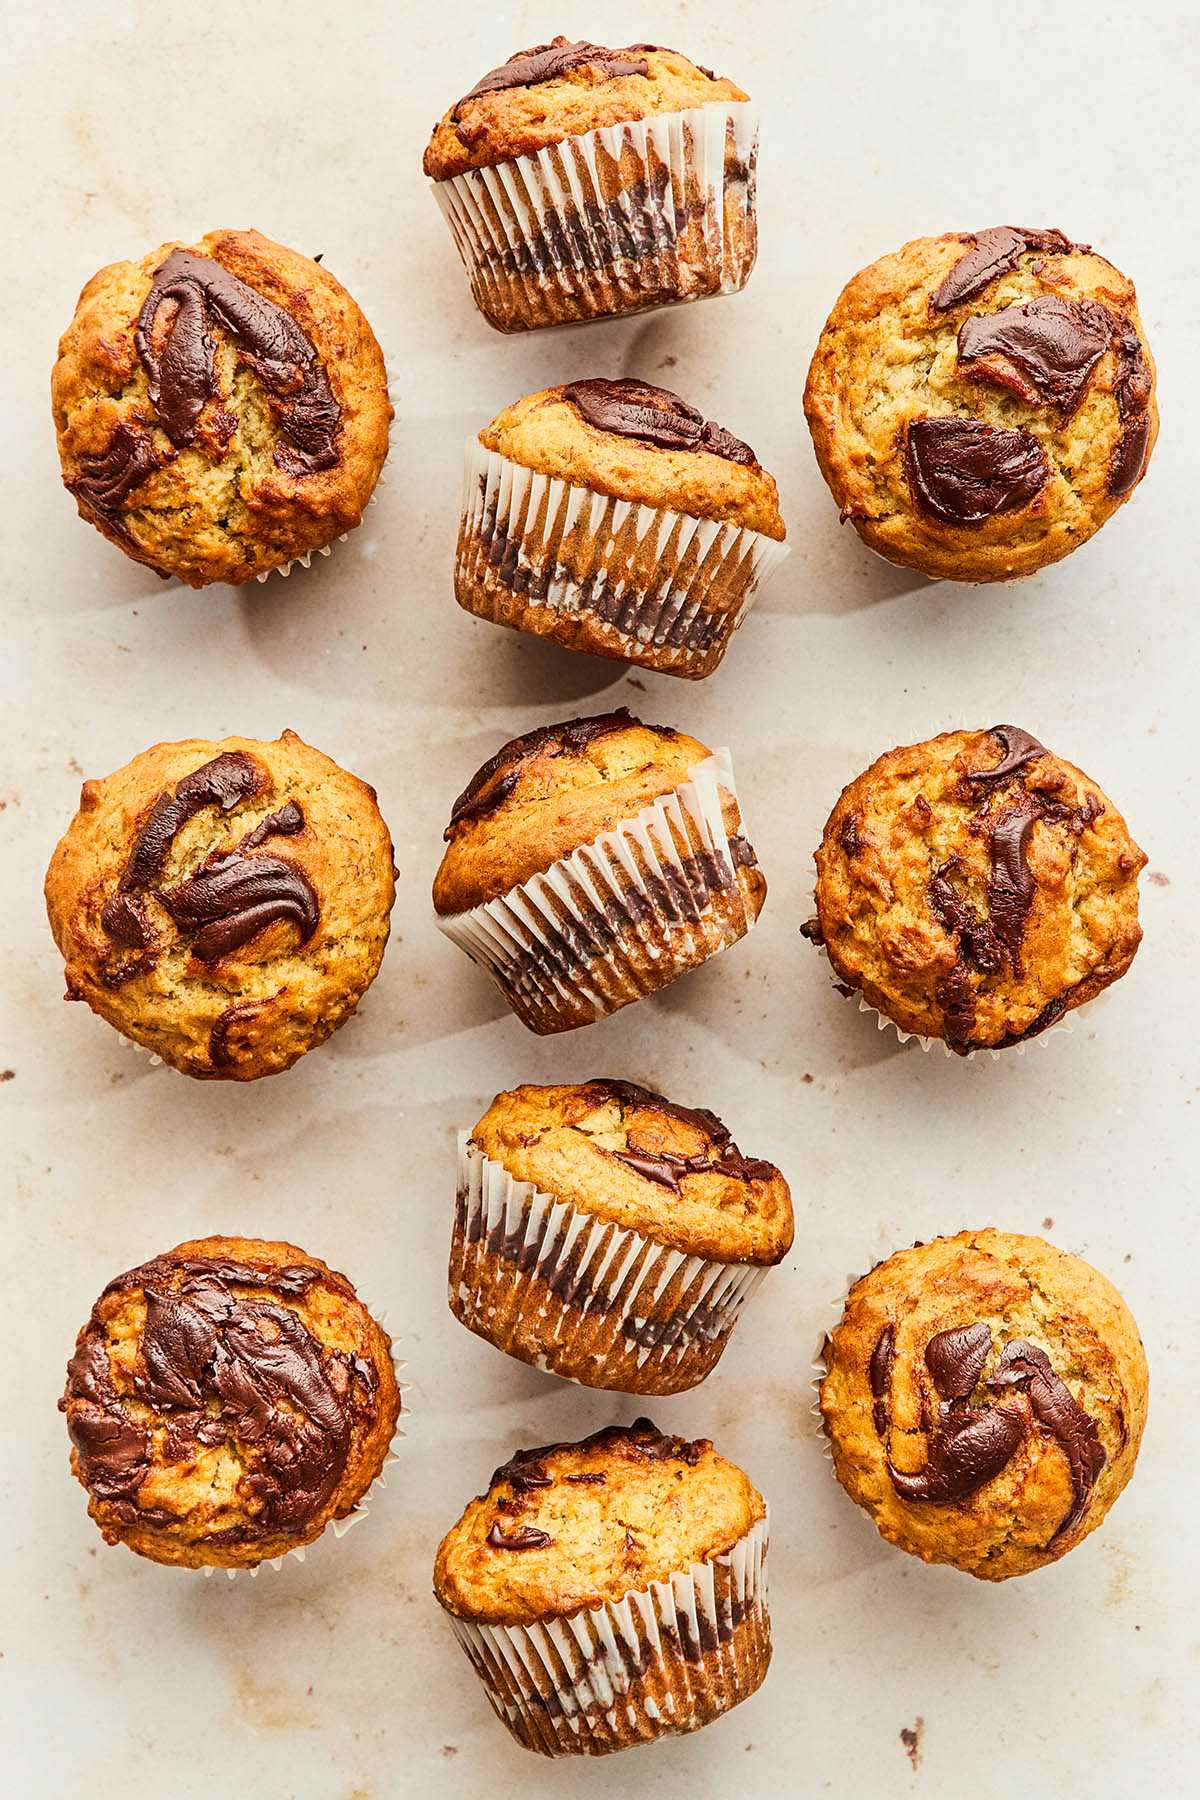 Banana Nutella muffins on a warm-coloured marble surface.